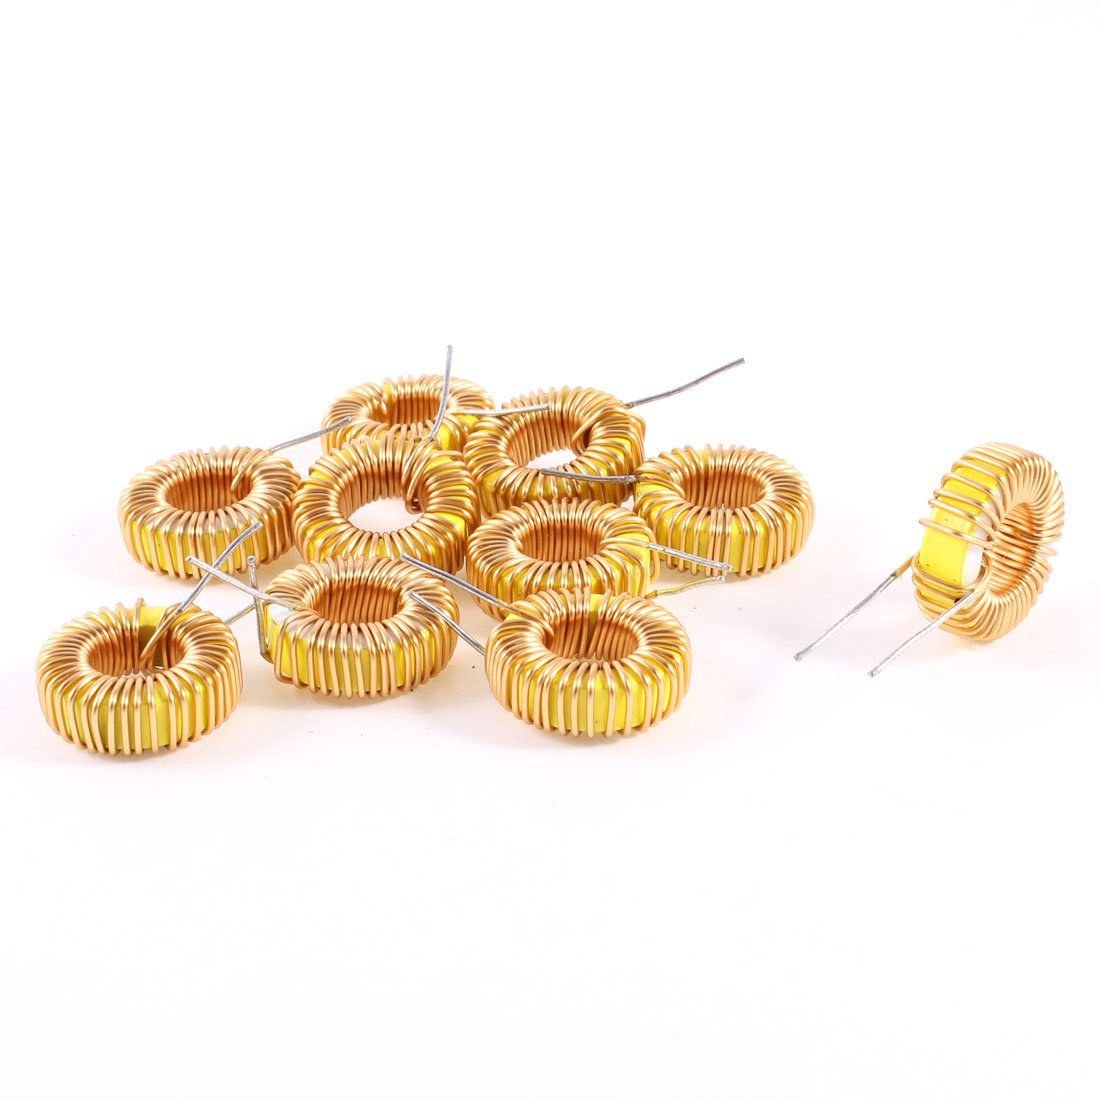 uxcell 10 Pcs Toroid Core Inductor Wire Wind Wound 68uH 39mOhm 3A Coil